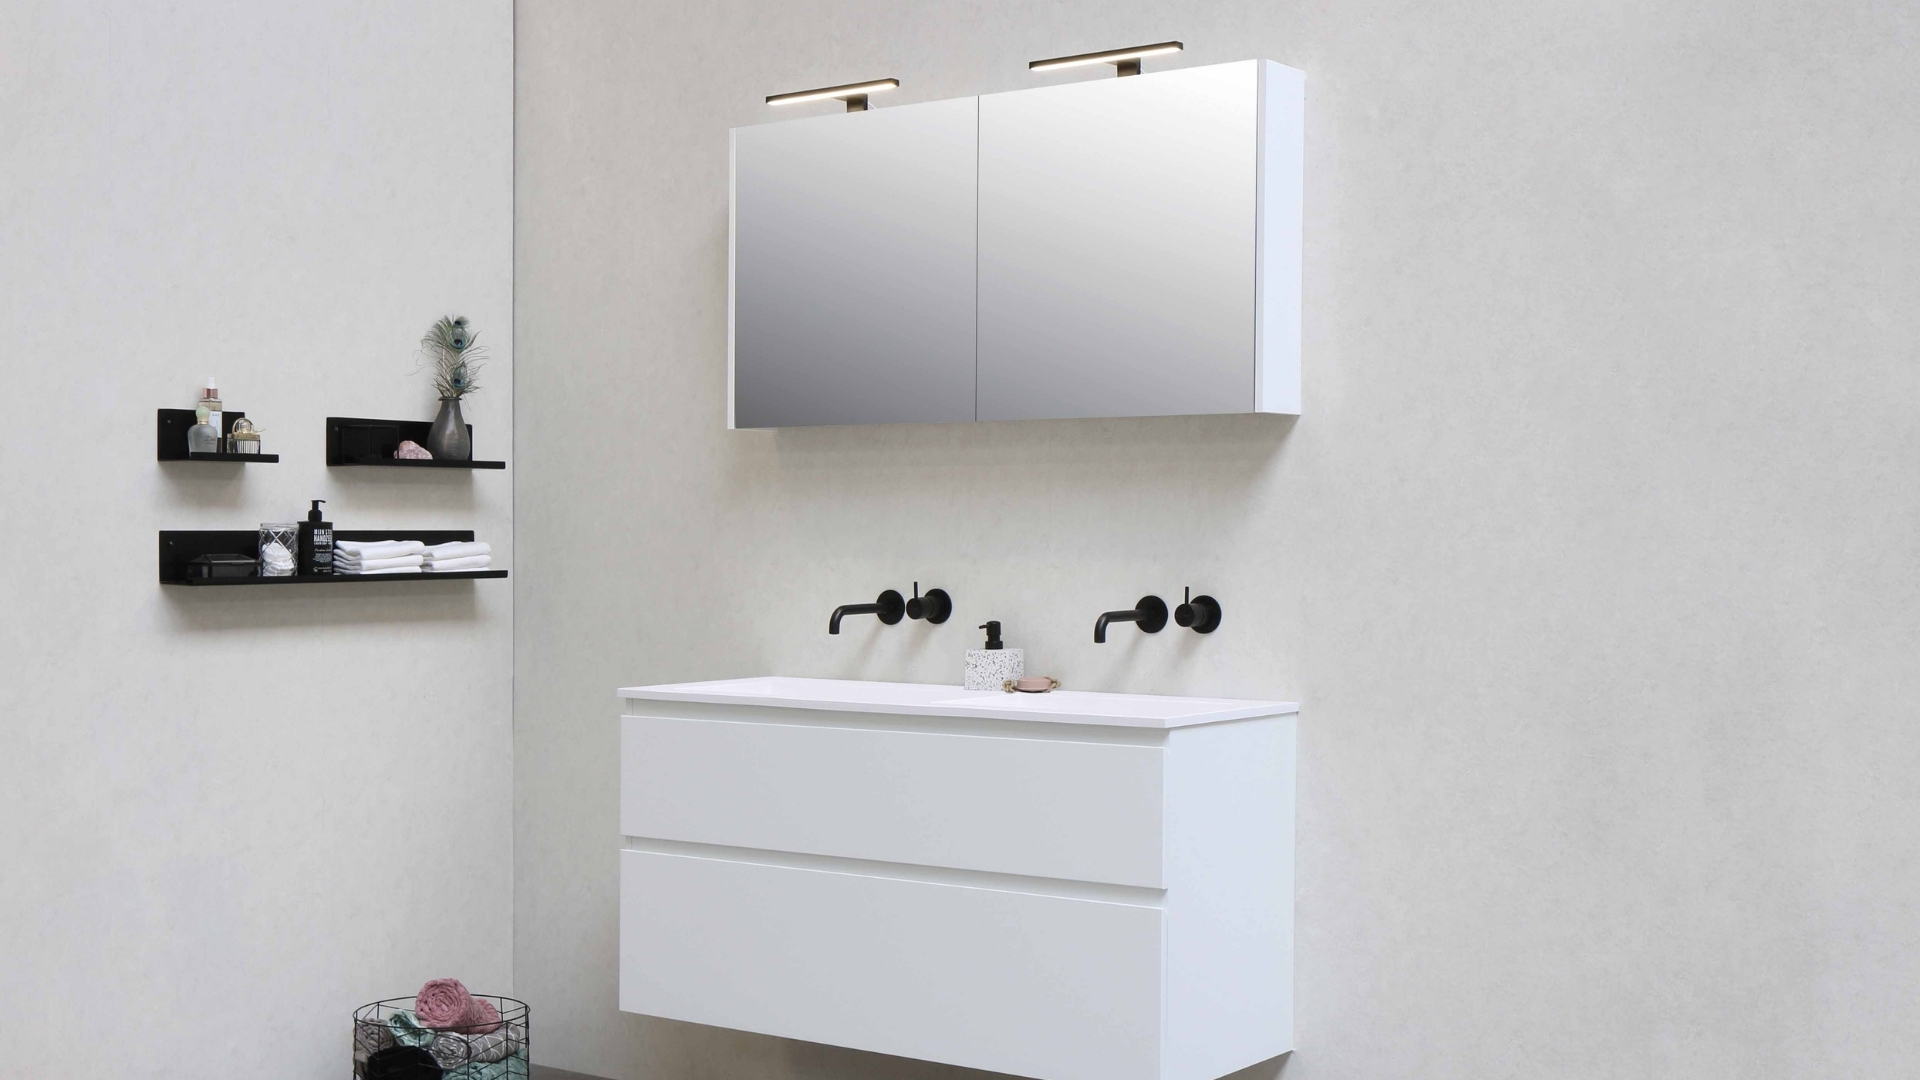 mcdermott remodeling bathroom wall shelf ideas